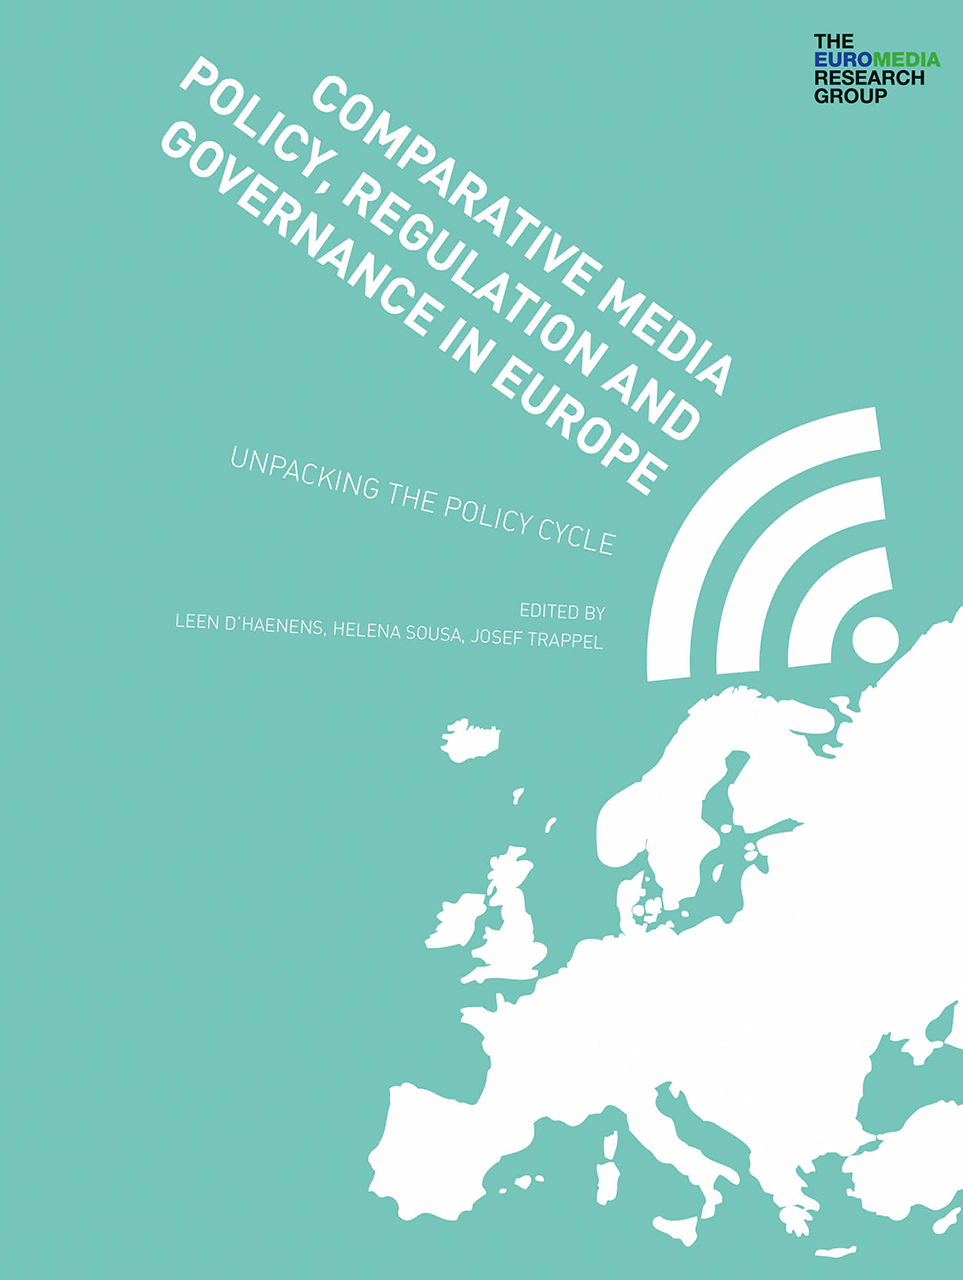 Comparative Media Policy, Regulation and Governance in Europe: Unpacking the Policy Cycle